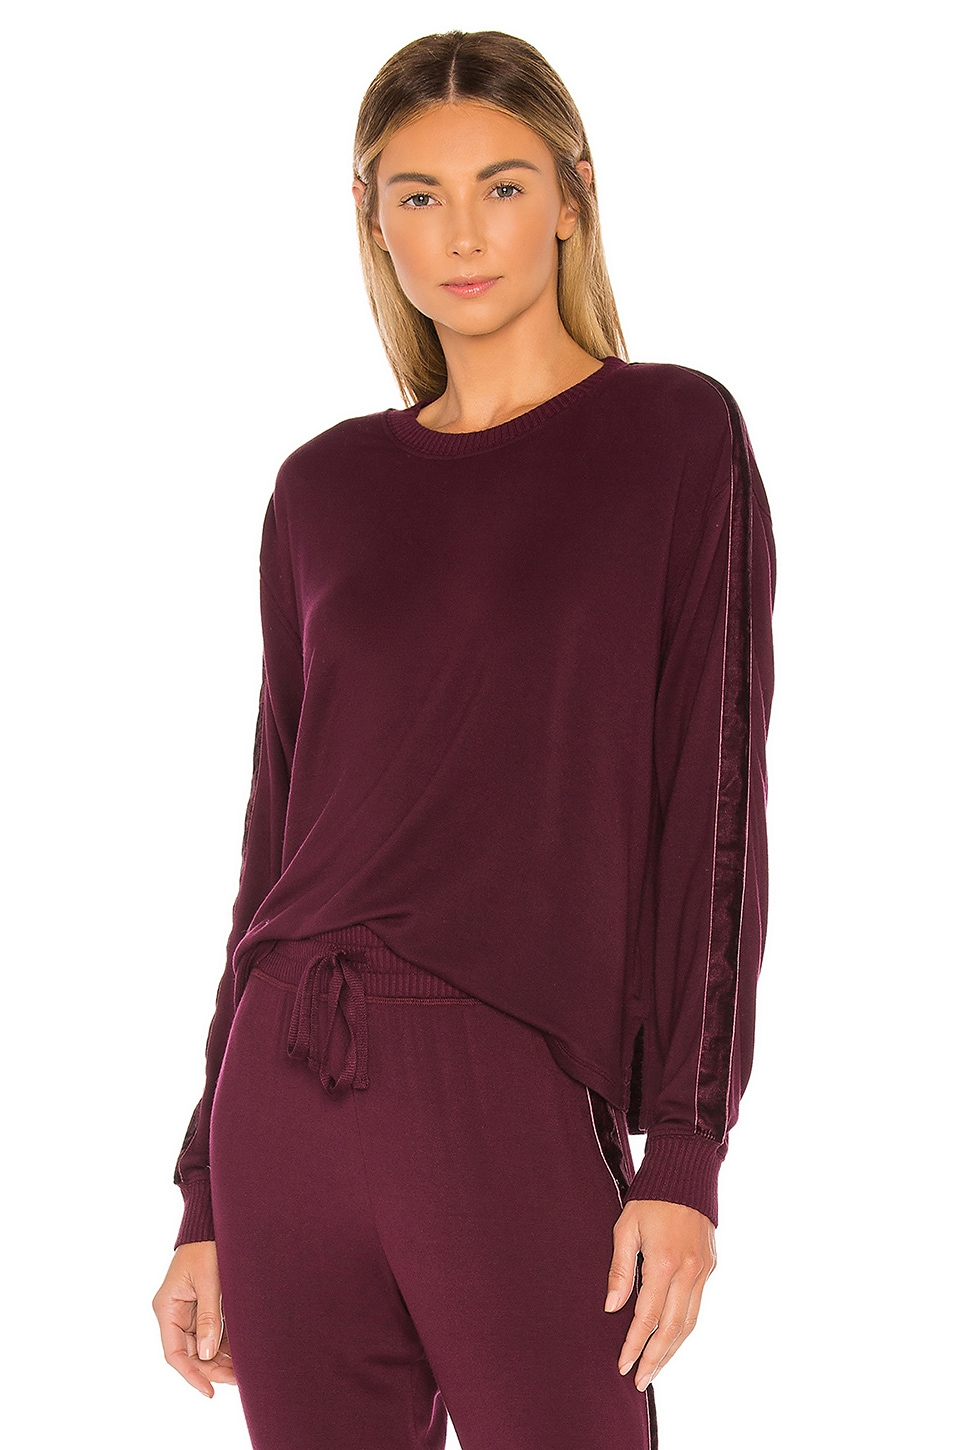 Splendid Super Soft Sweatshirt in Aubergine